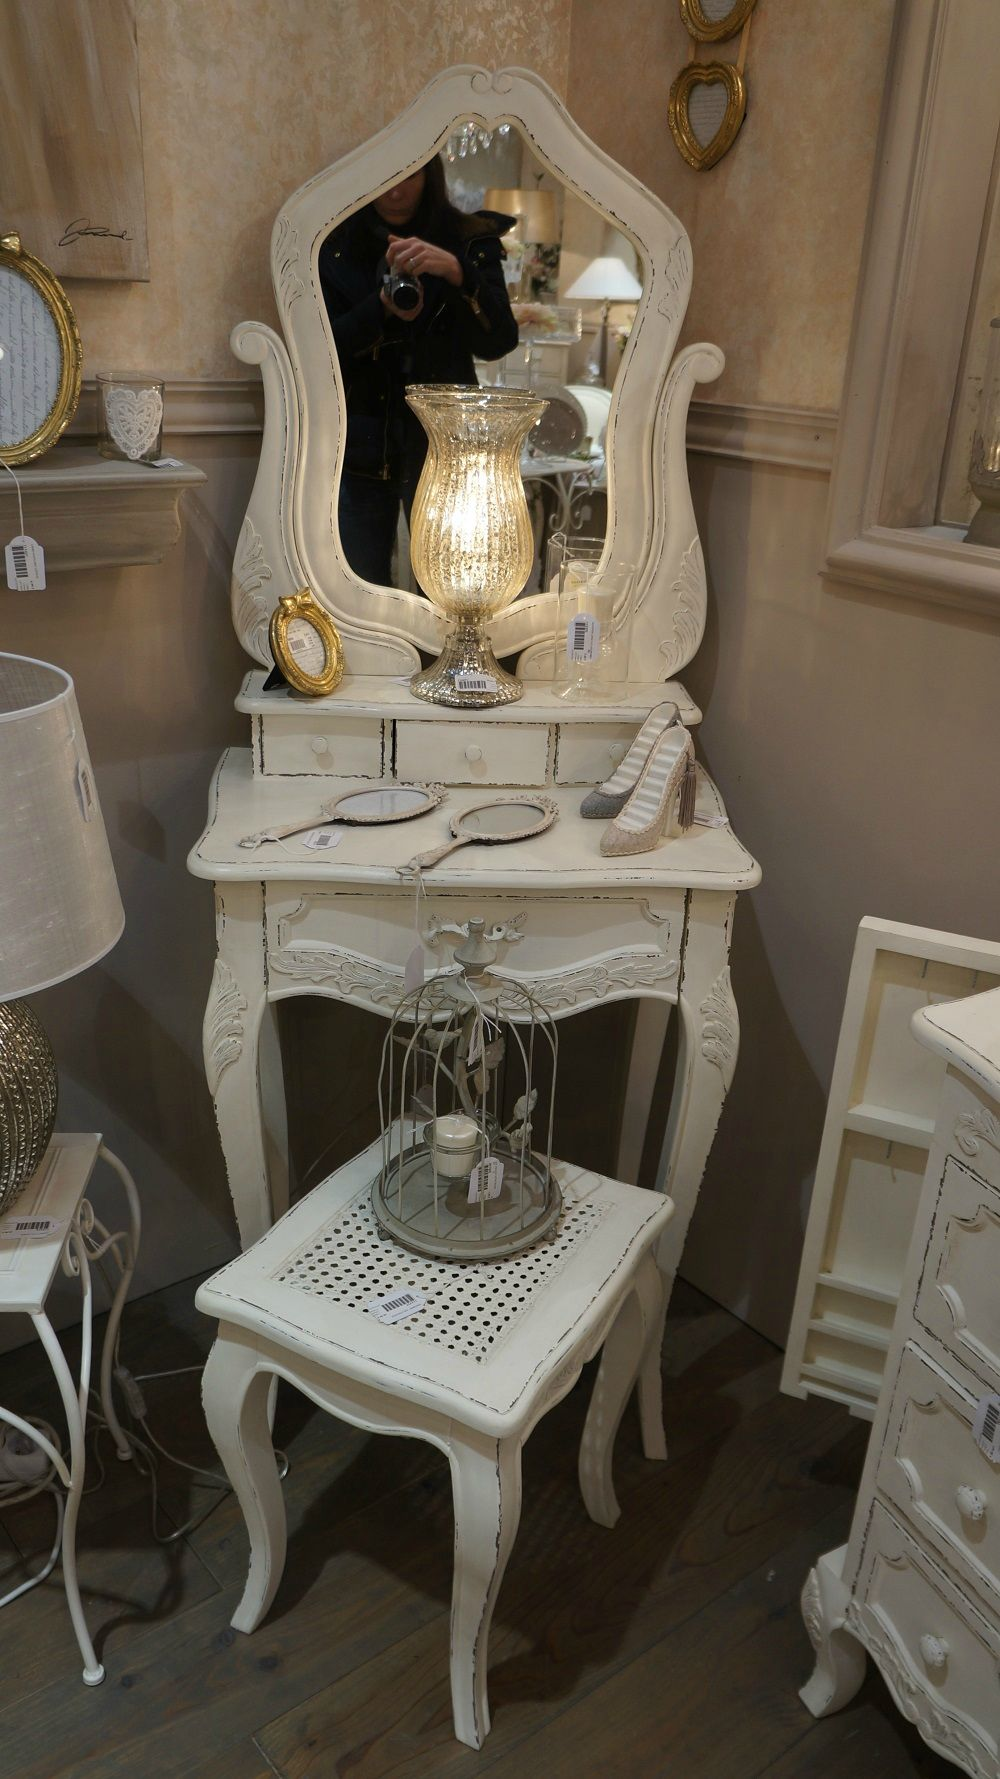 coiffeuse blanche romantique coiffeuse pinterest coiffeuse blanche coiffeur et romantique. Black Bedroom Furniture Sets. Home Design Ideas